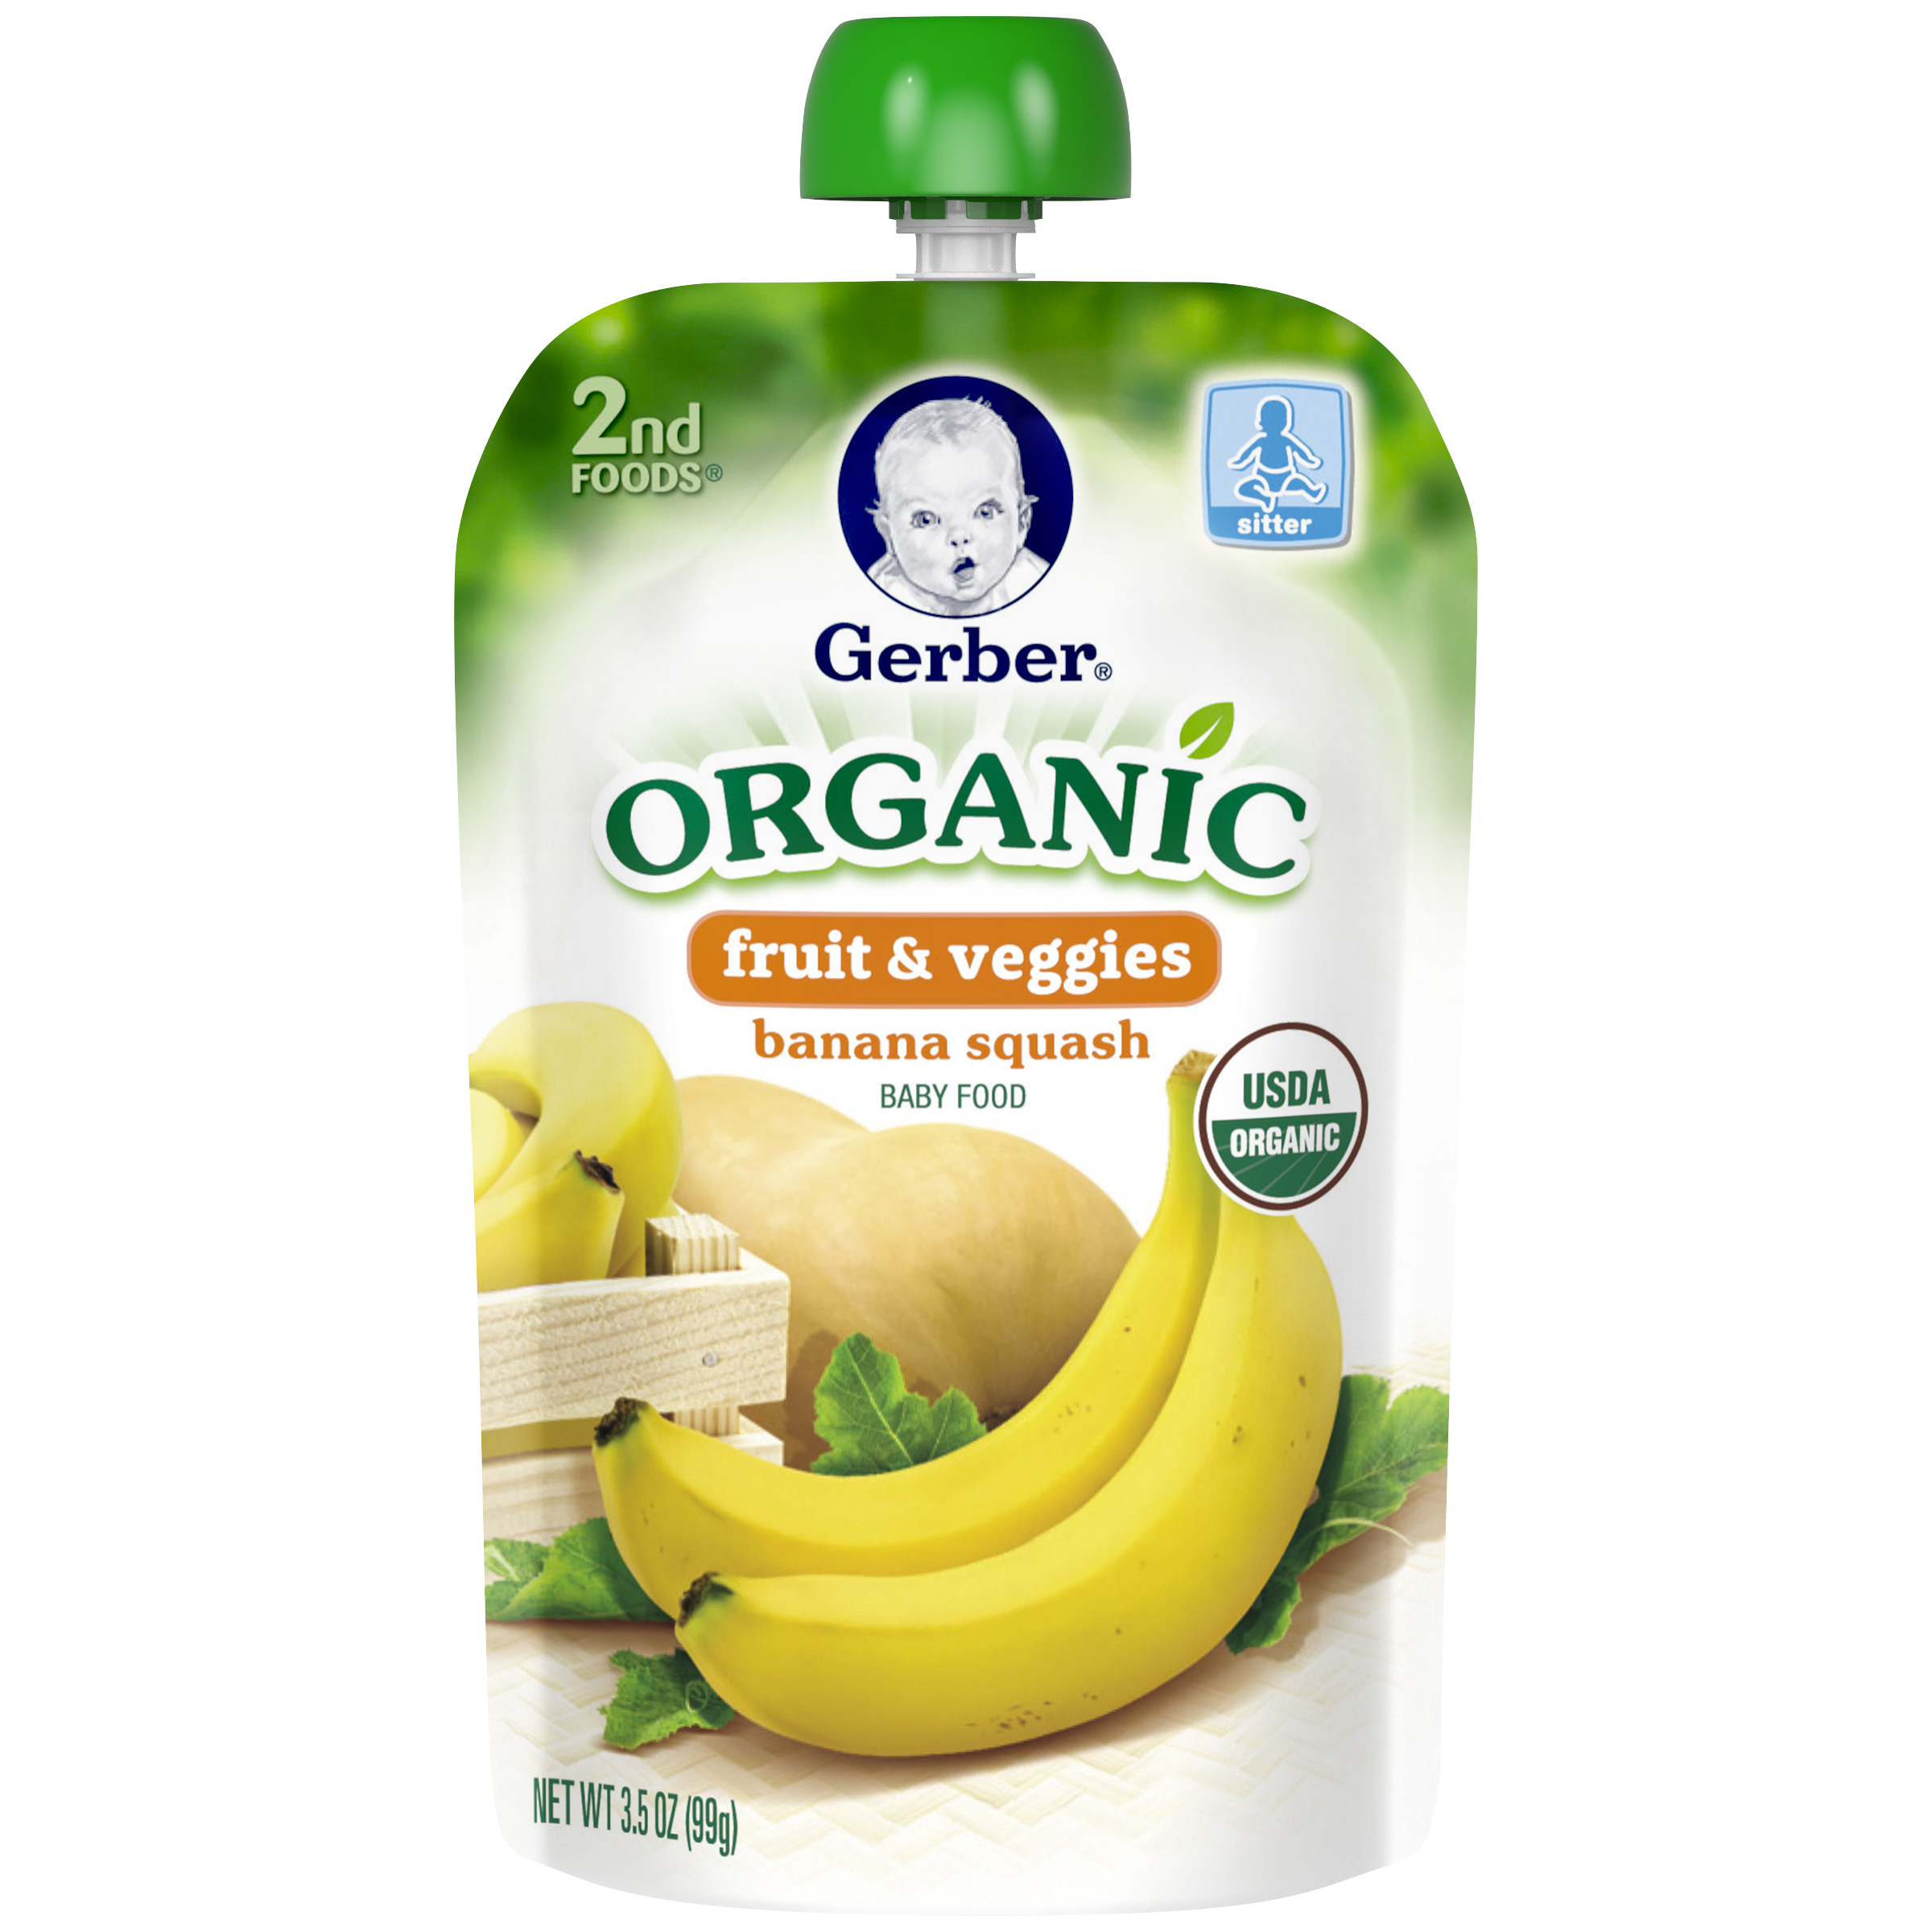 Gerber�� 2nd Foods�� Organic Fruit & Veggies Banana Squash Baby Food, 3.5 oz